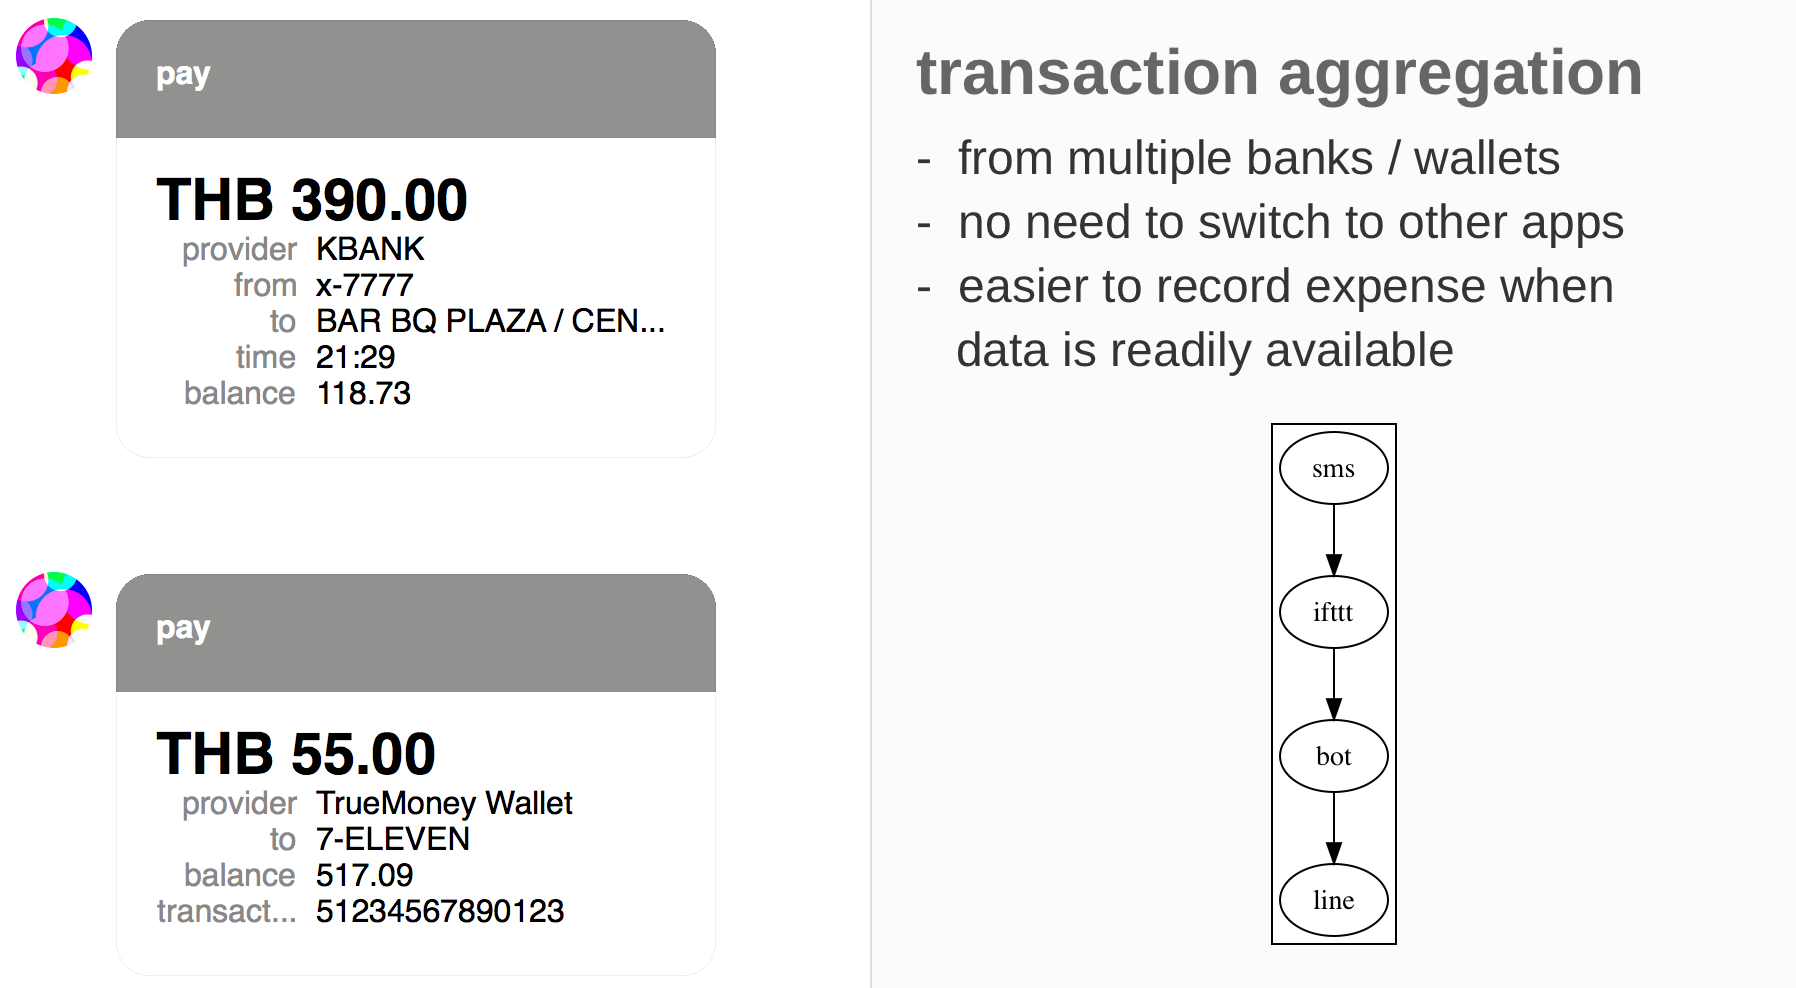 transaction_aggregation